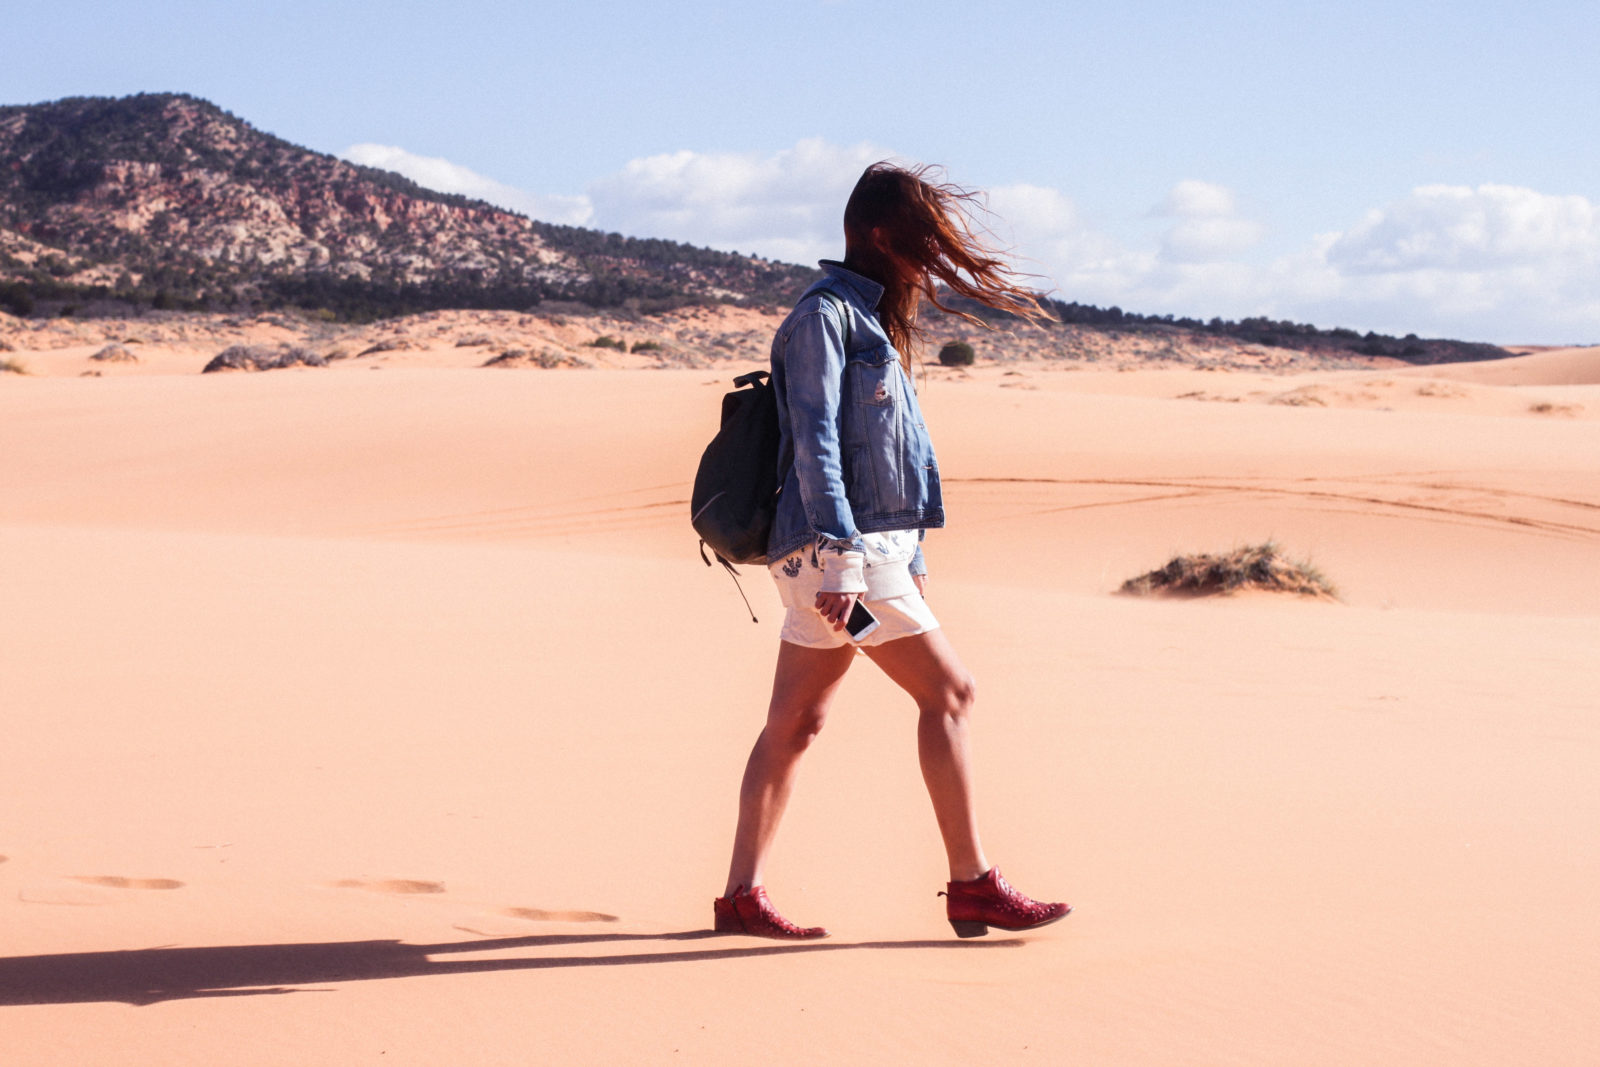 coral_pink_sand_dunes_kanab_utah_usa_roadtrip_trip_travel_donkeycool_route_backpack_red_boots-13